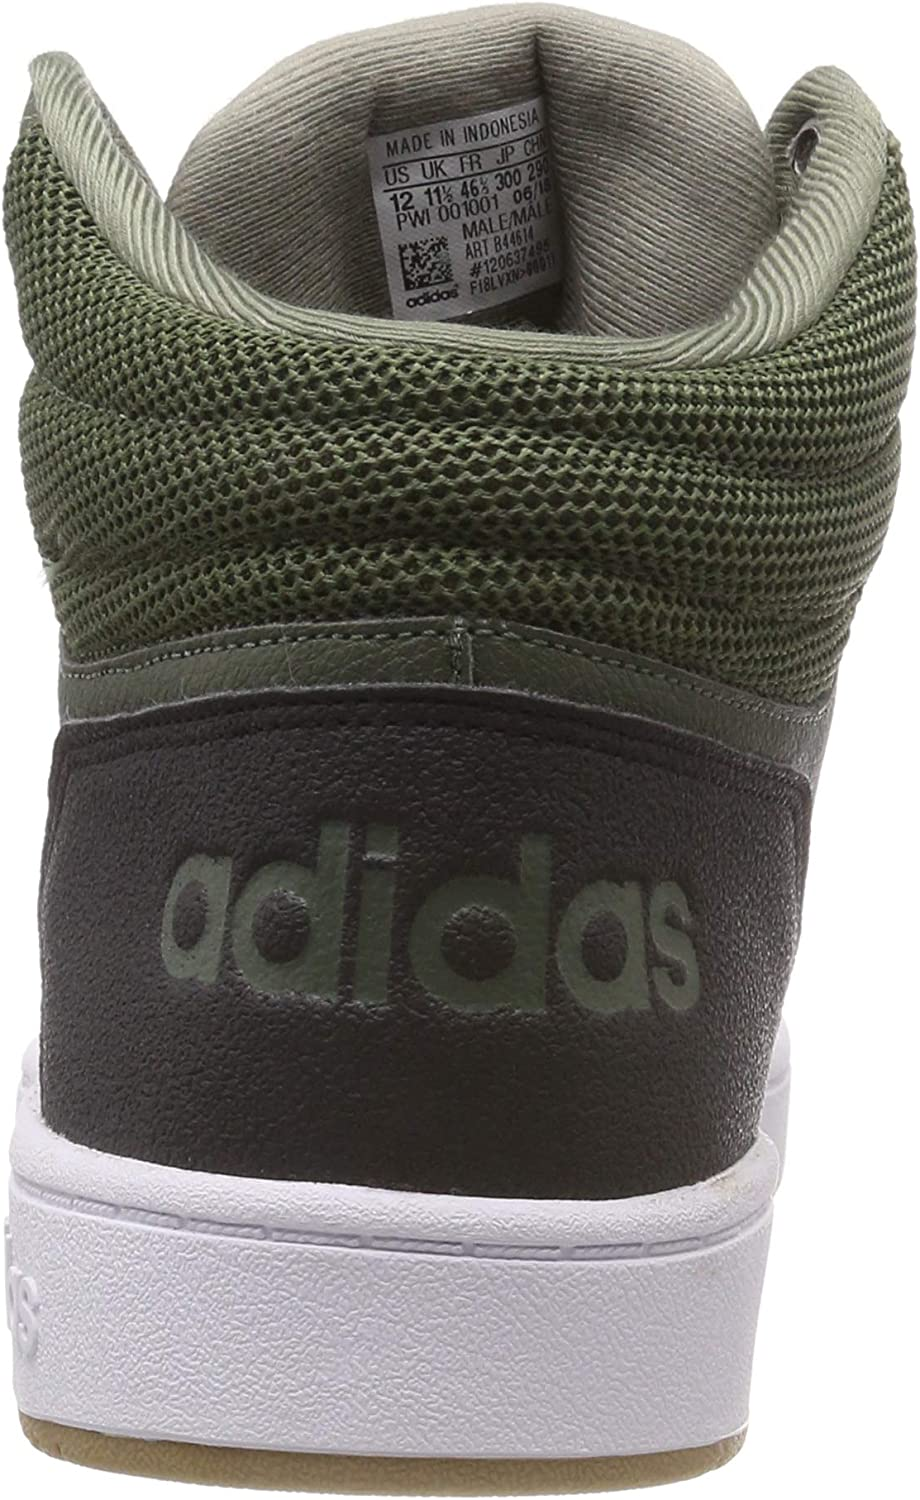 adidas Men's Hoops 2.0 Mid Fitness Shoes Green Base Green Trace Cargo Hi Res Orange S18 QQfDuw